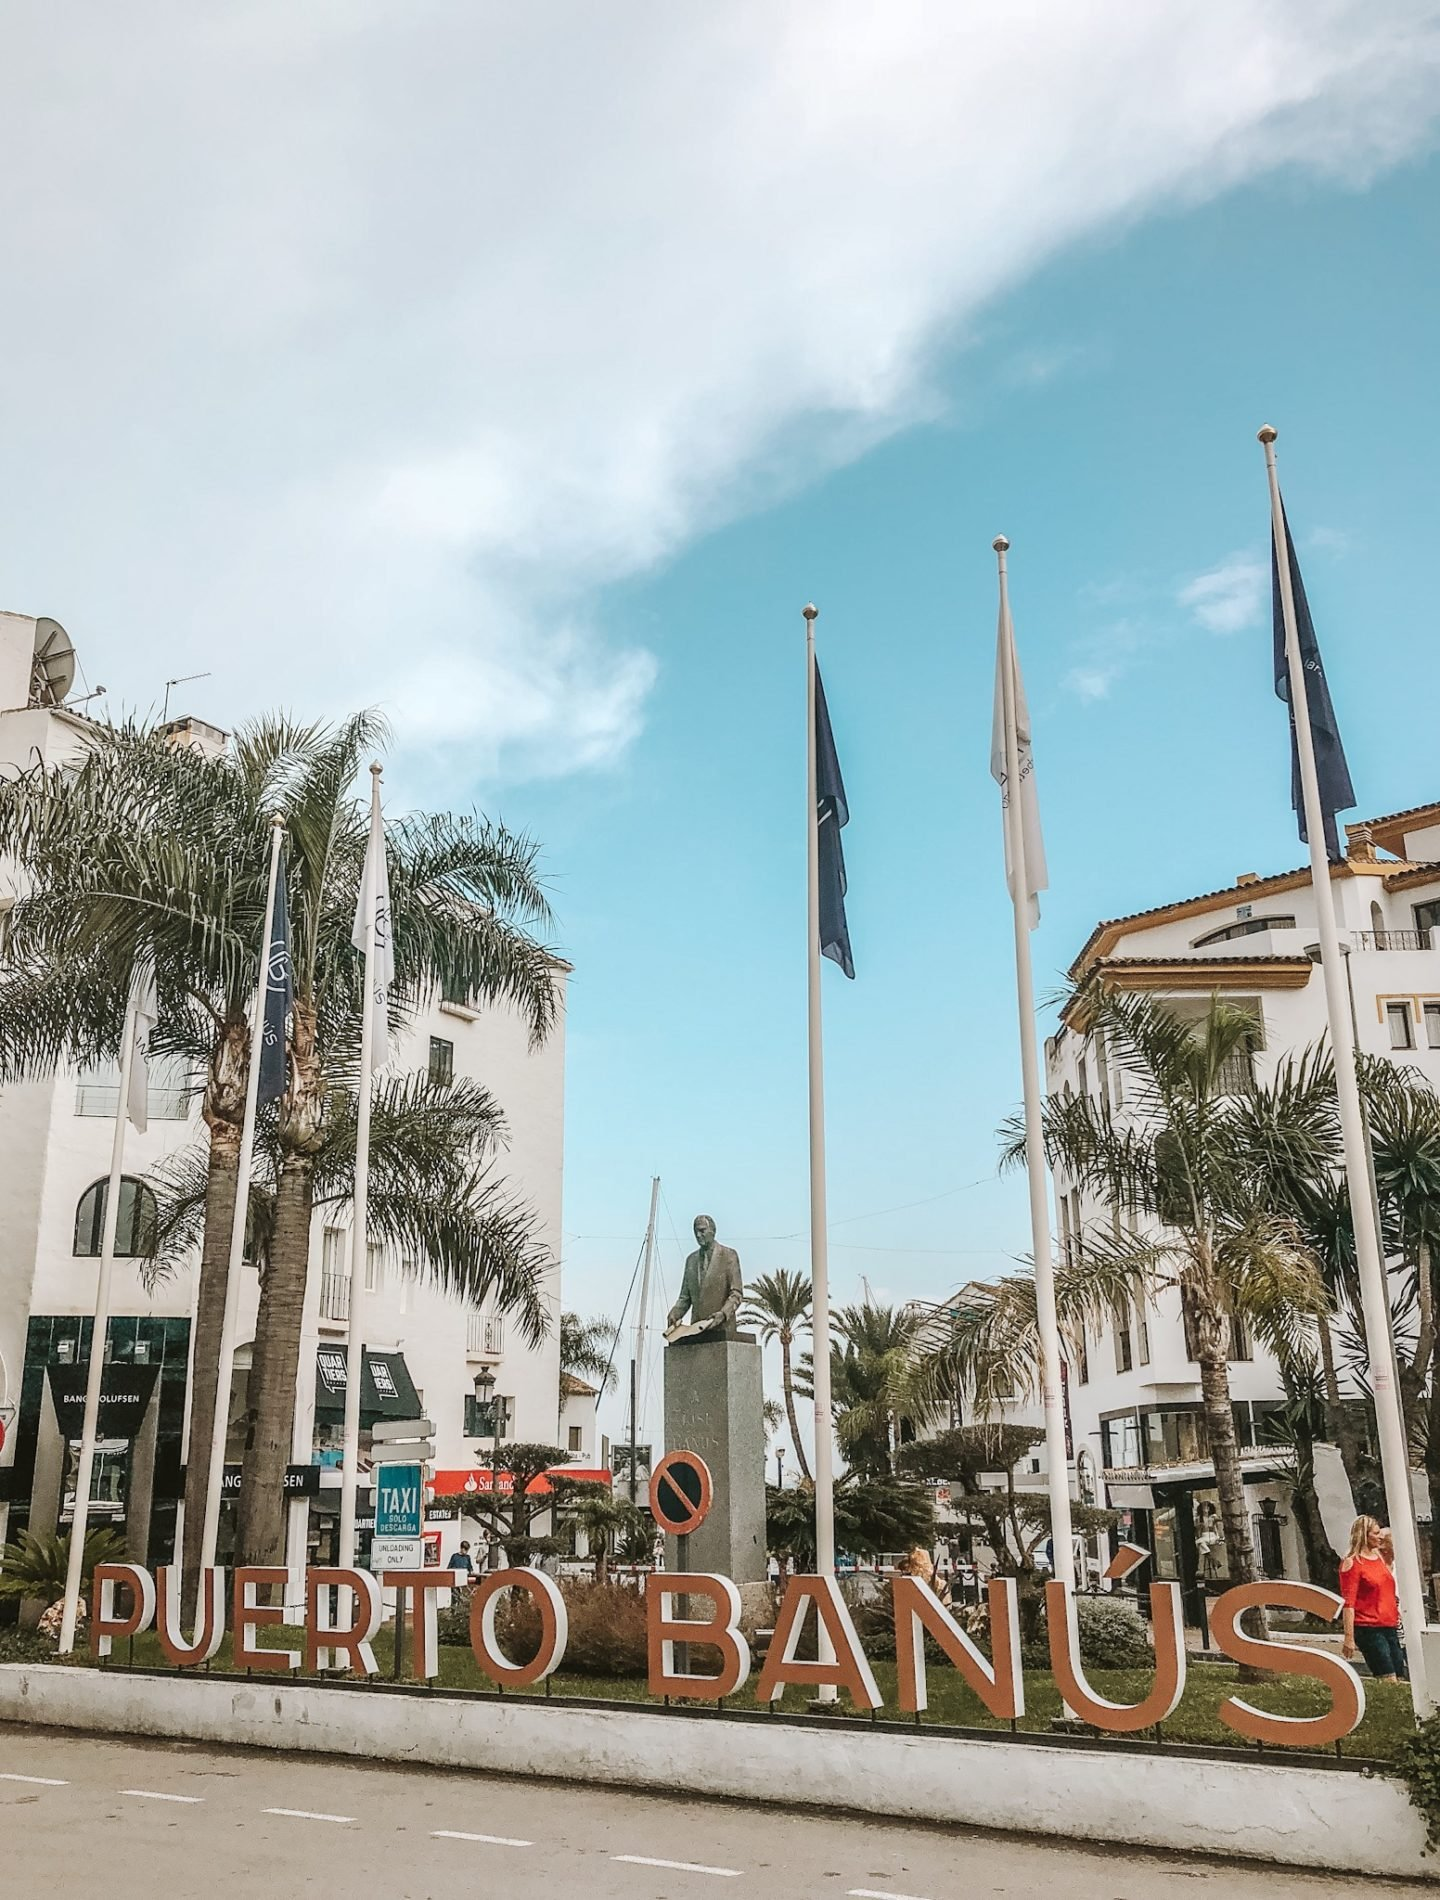 Puerto Banus Marina is known as the millionaires playground and it is the perfect place to people watch, yacht watch or spot supercars.